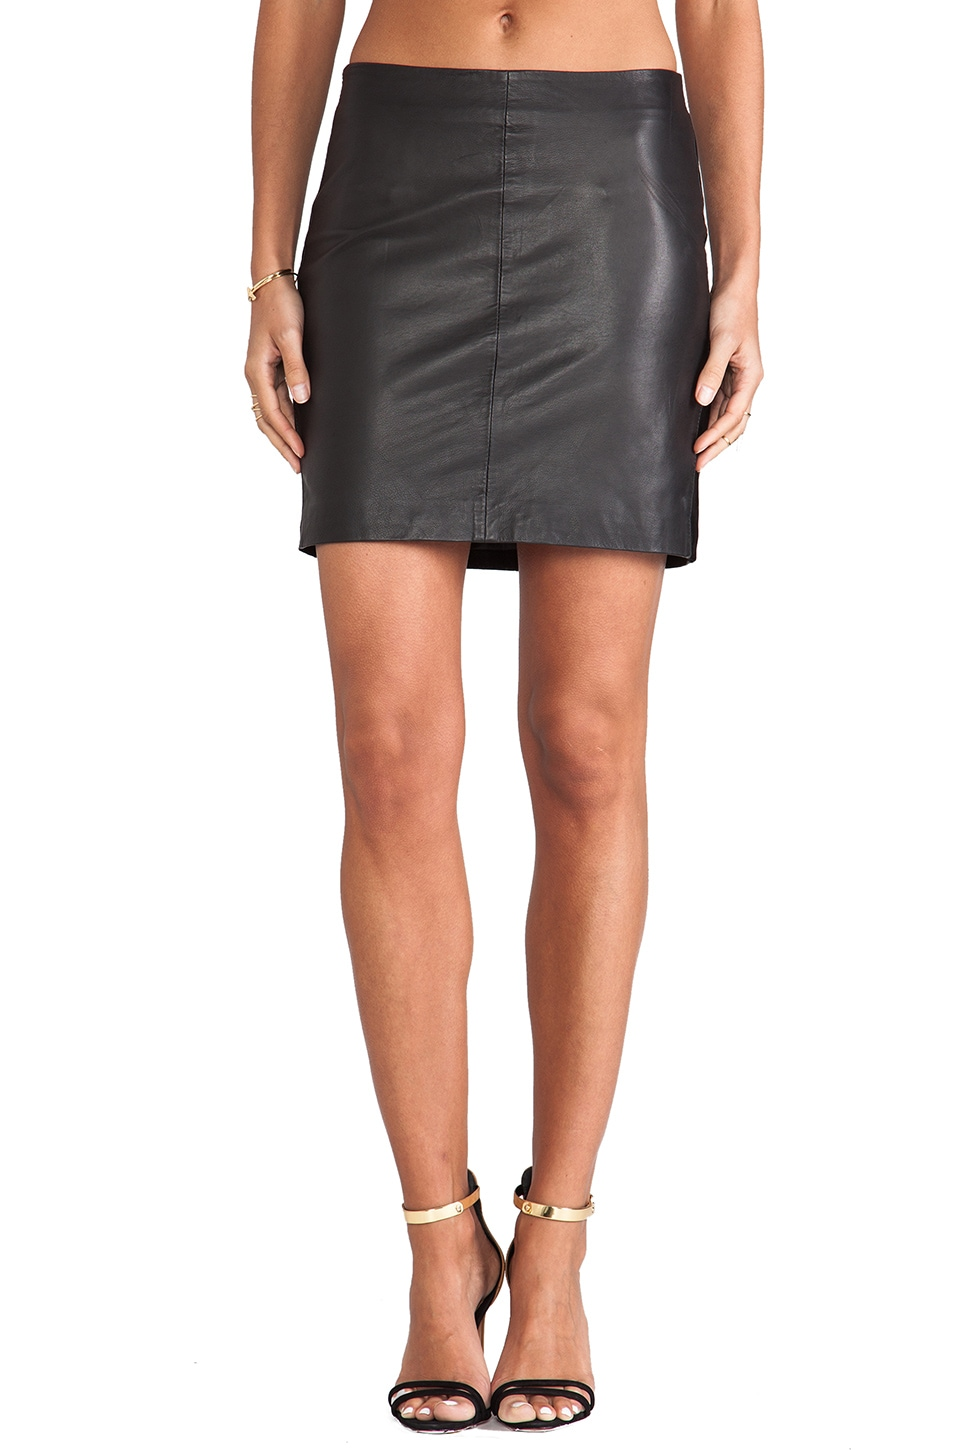 Gestuz Riann Skirt in Black